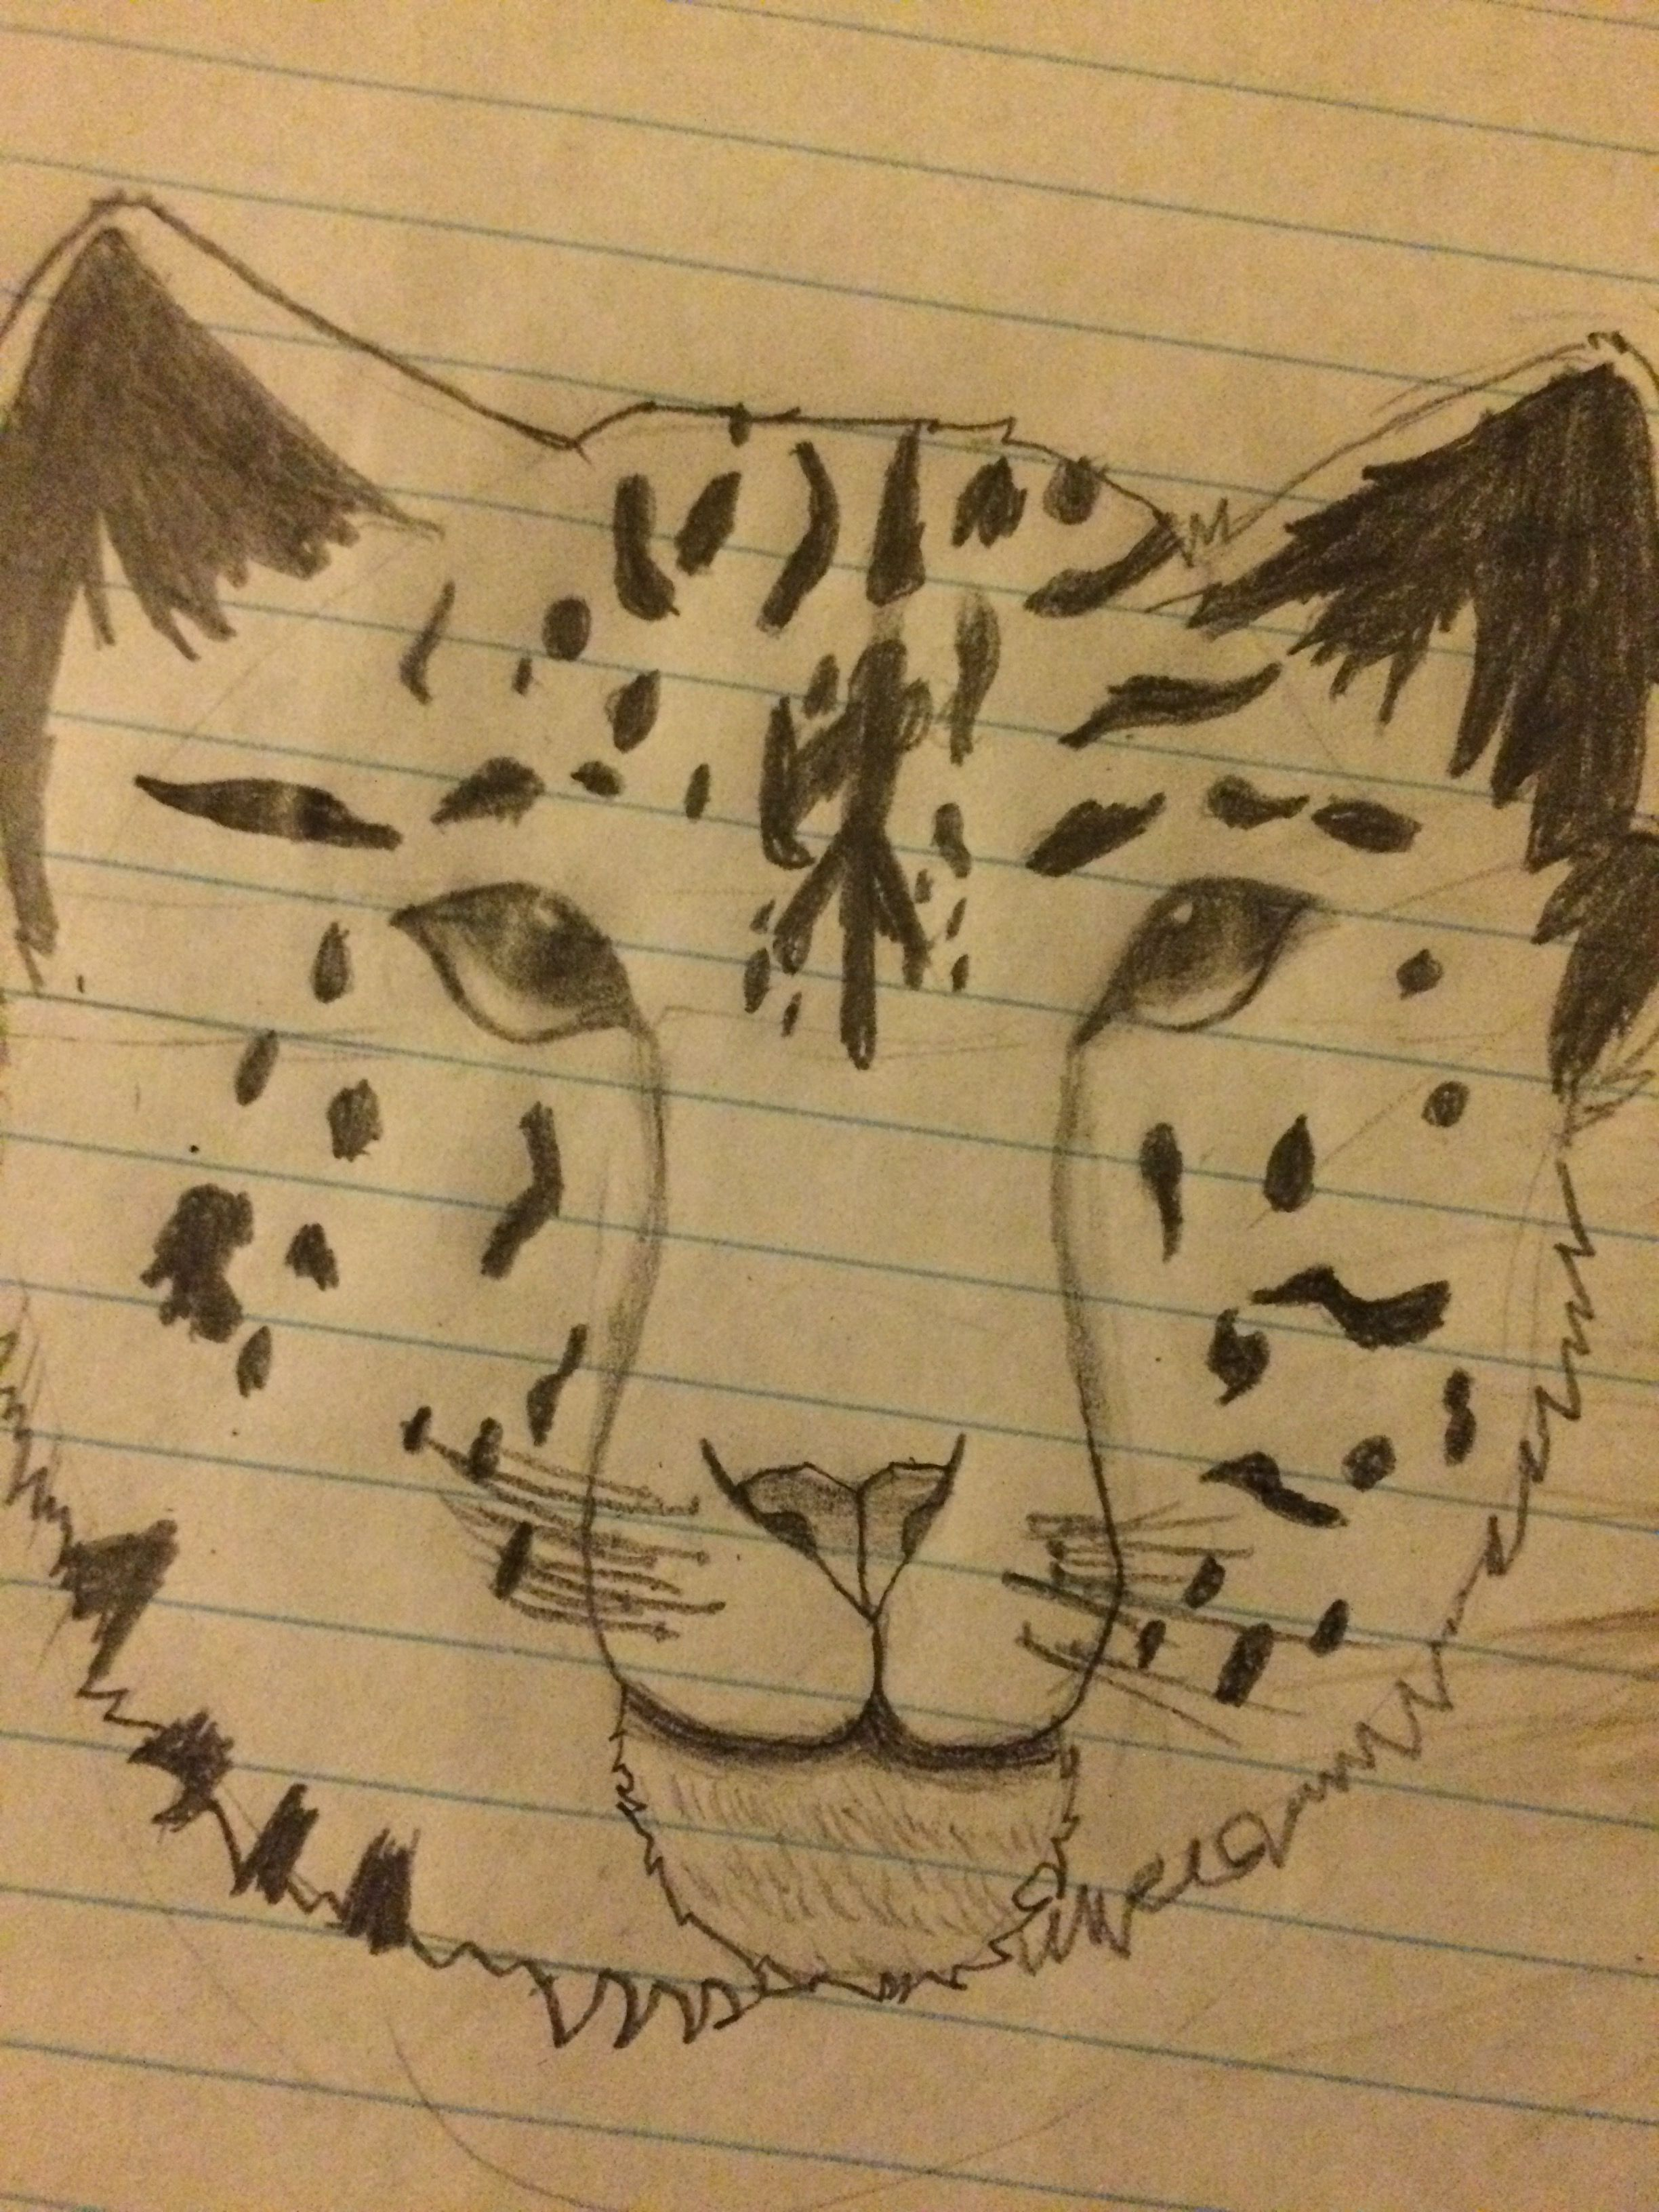 Here S A Drawing I Did For A Project It S A Snow Leopard It Is